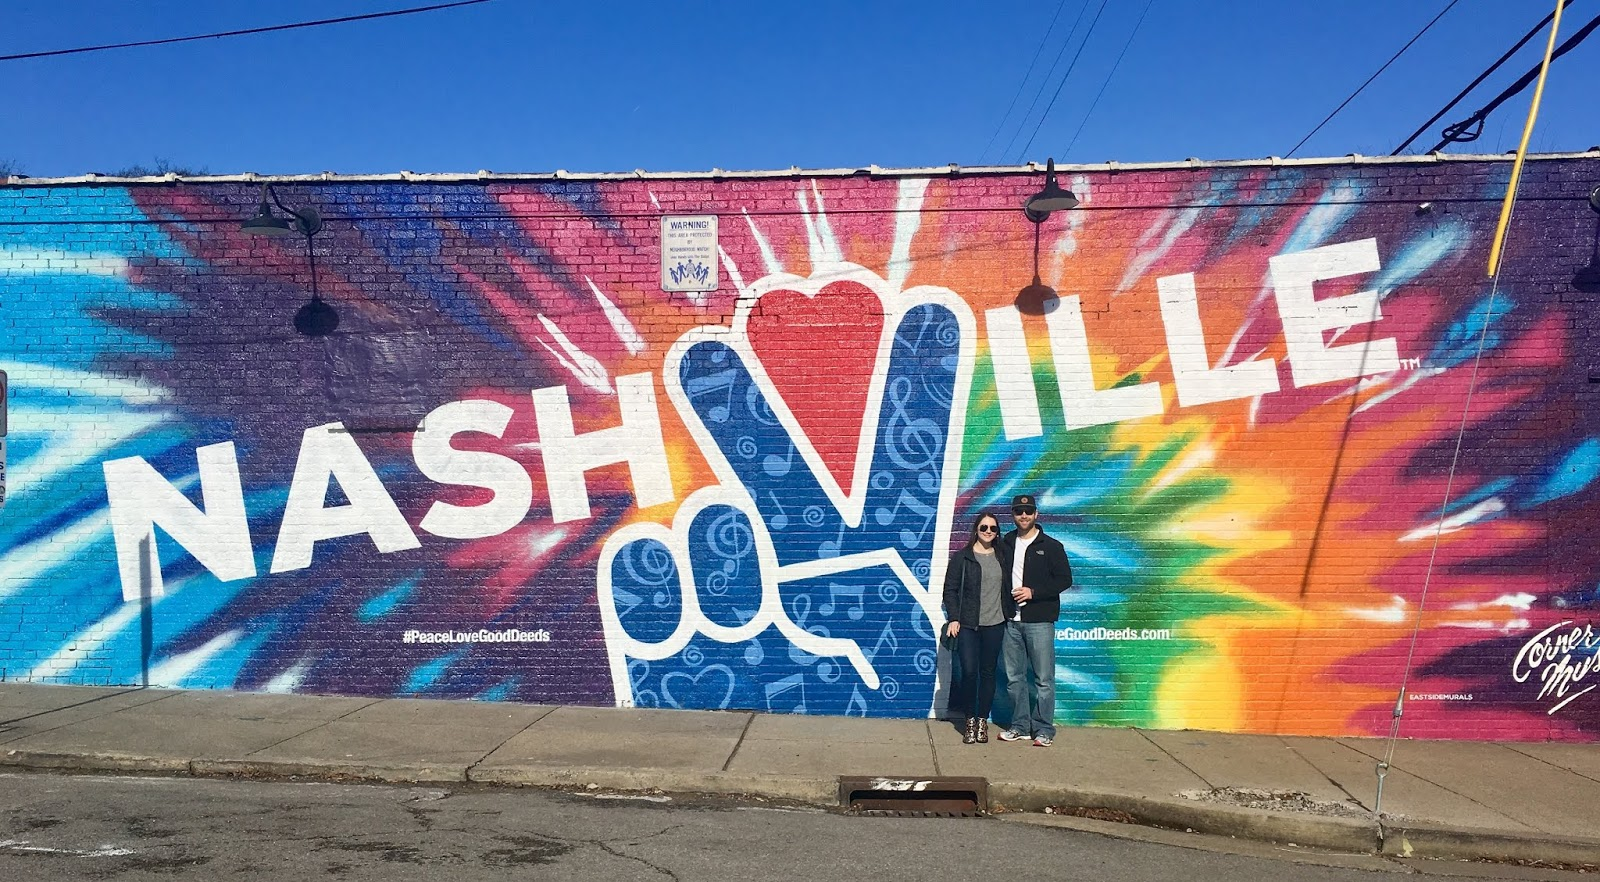 Murals in 12 South Neighborhood Nashville | What to do in the 12 South Neighborhood Nashville | Itinerary for a Long Weekend in Nashville | A Memory of Us